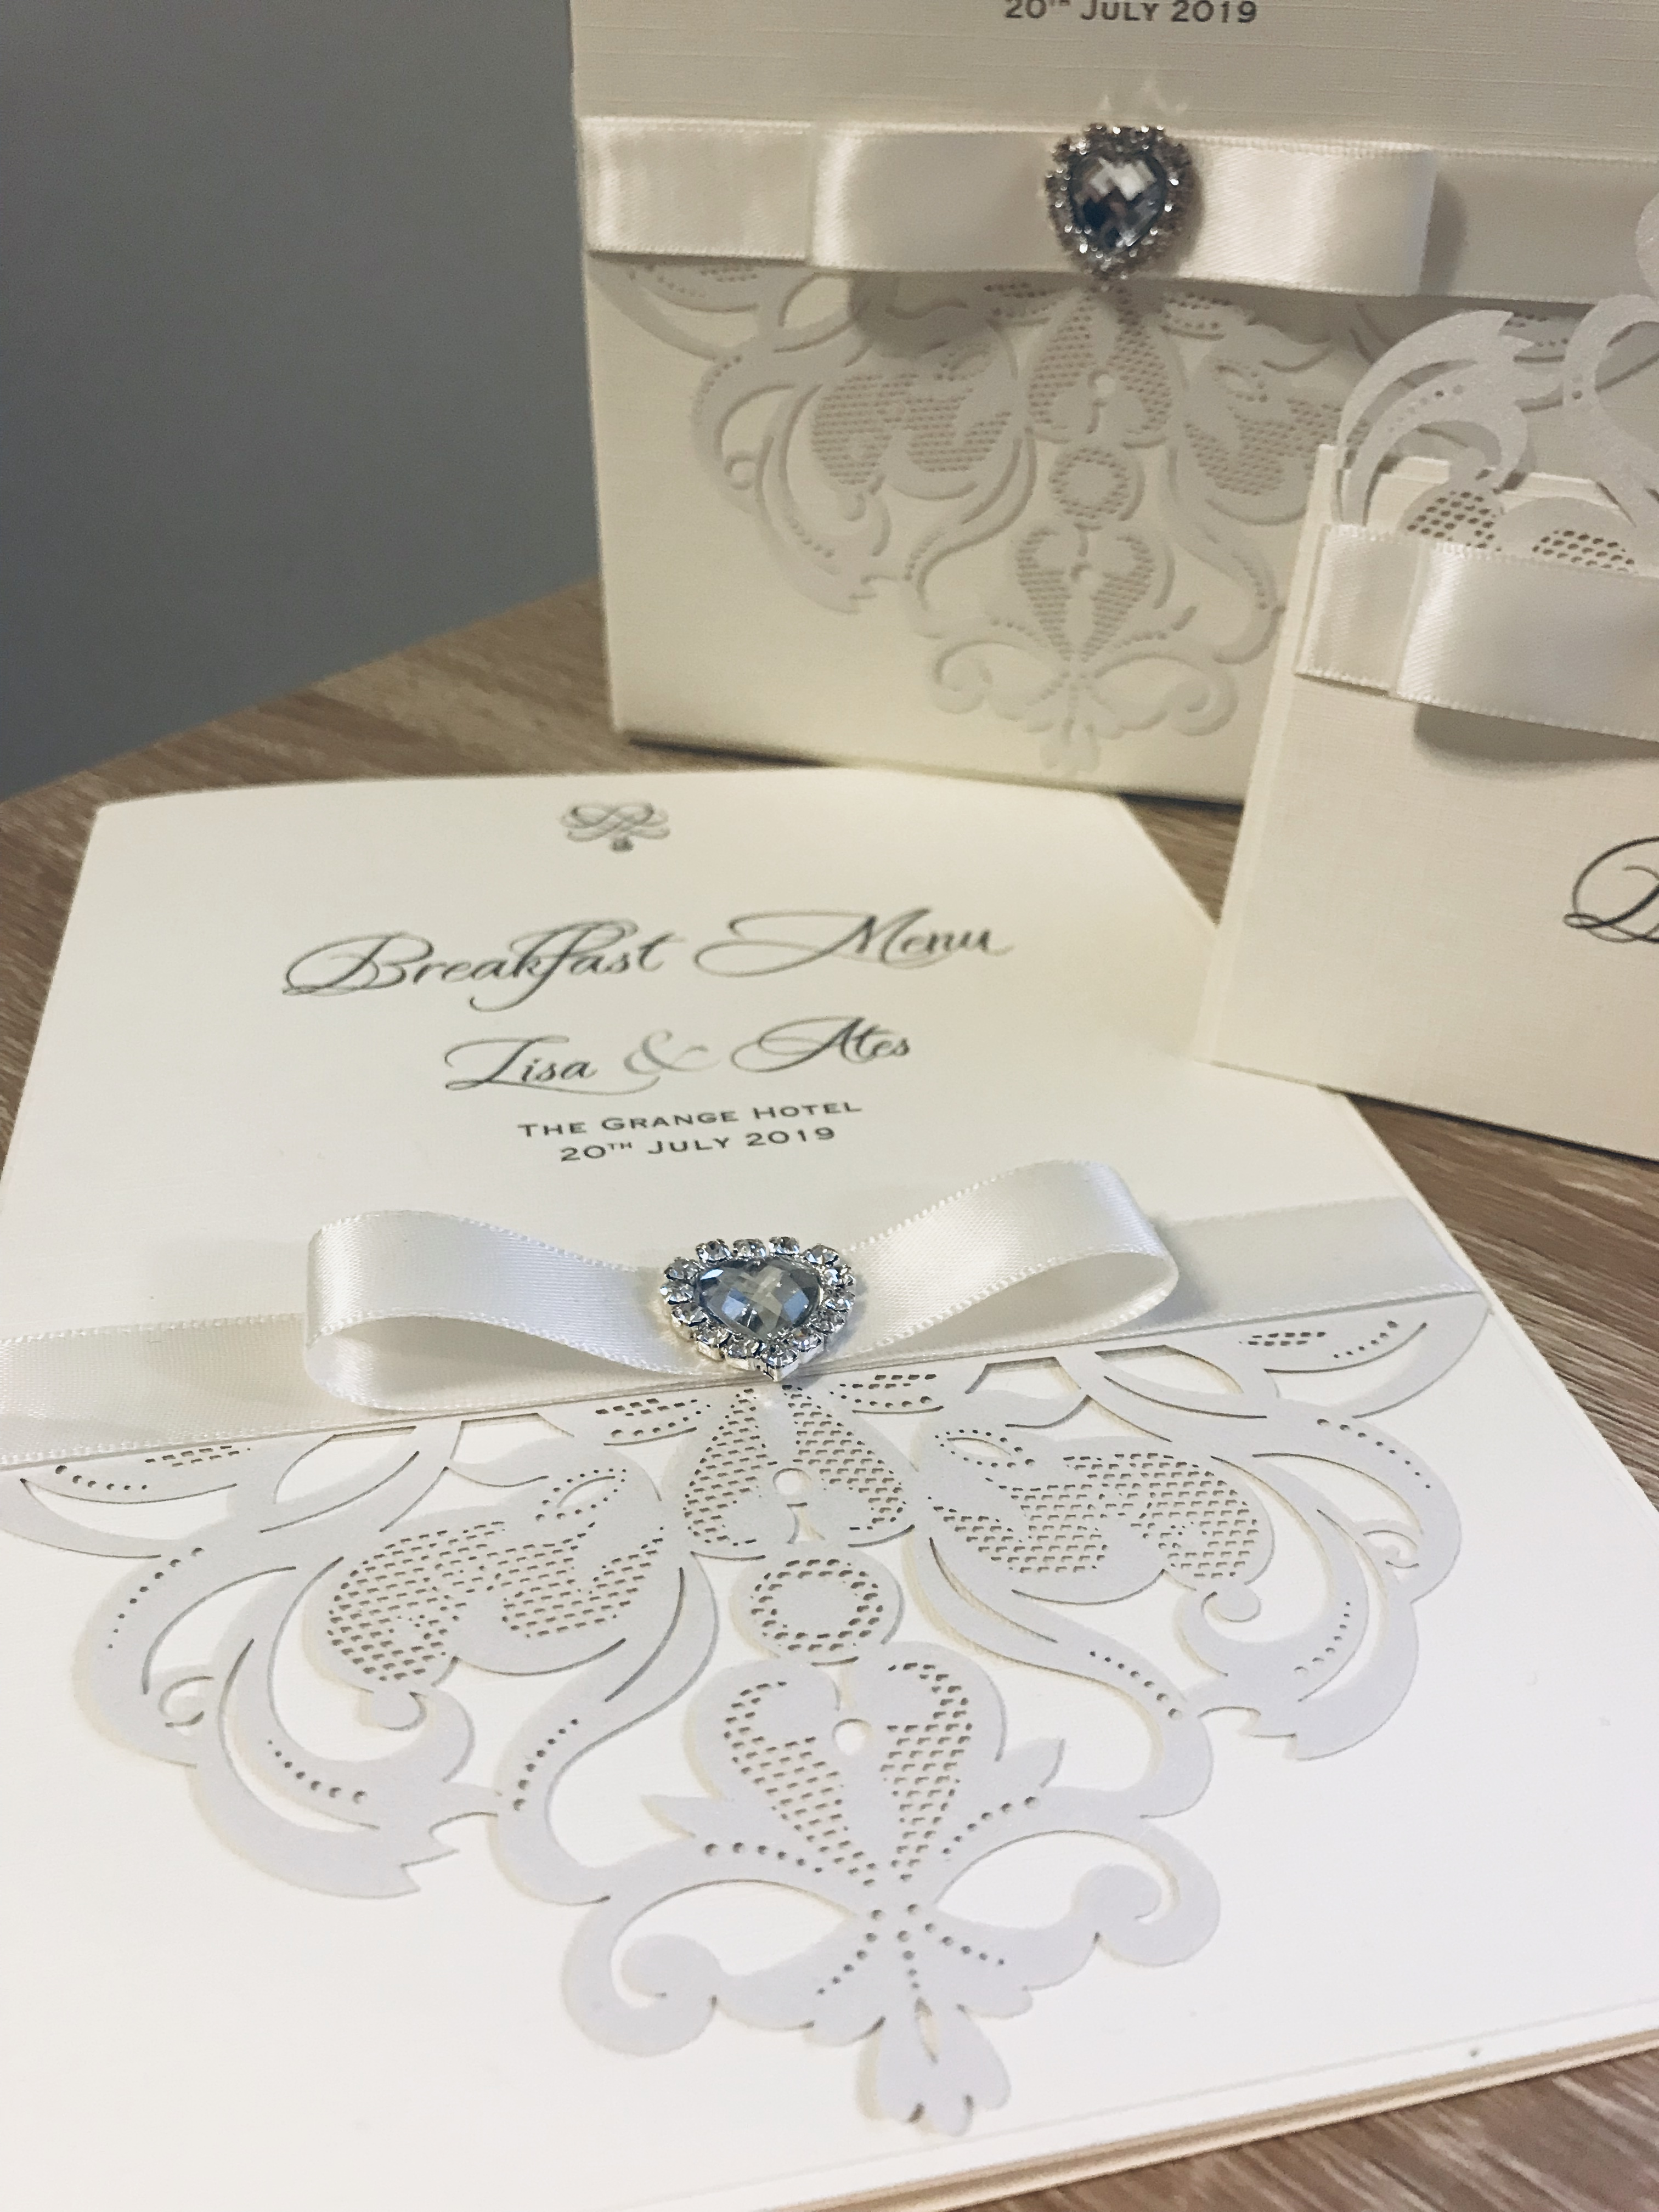 Luxury wedding breakfast menus decorated with crystal heart brooch and laser detail